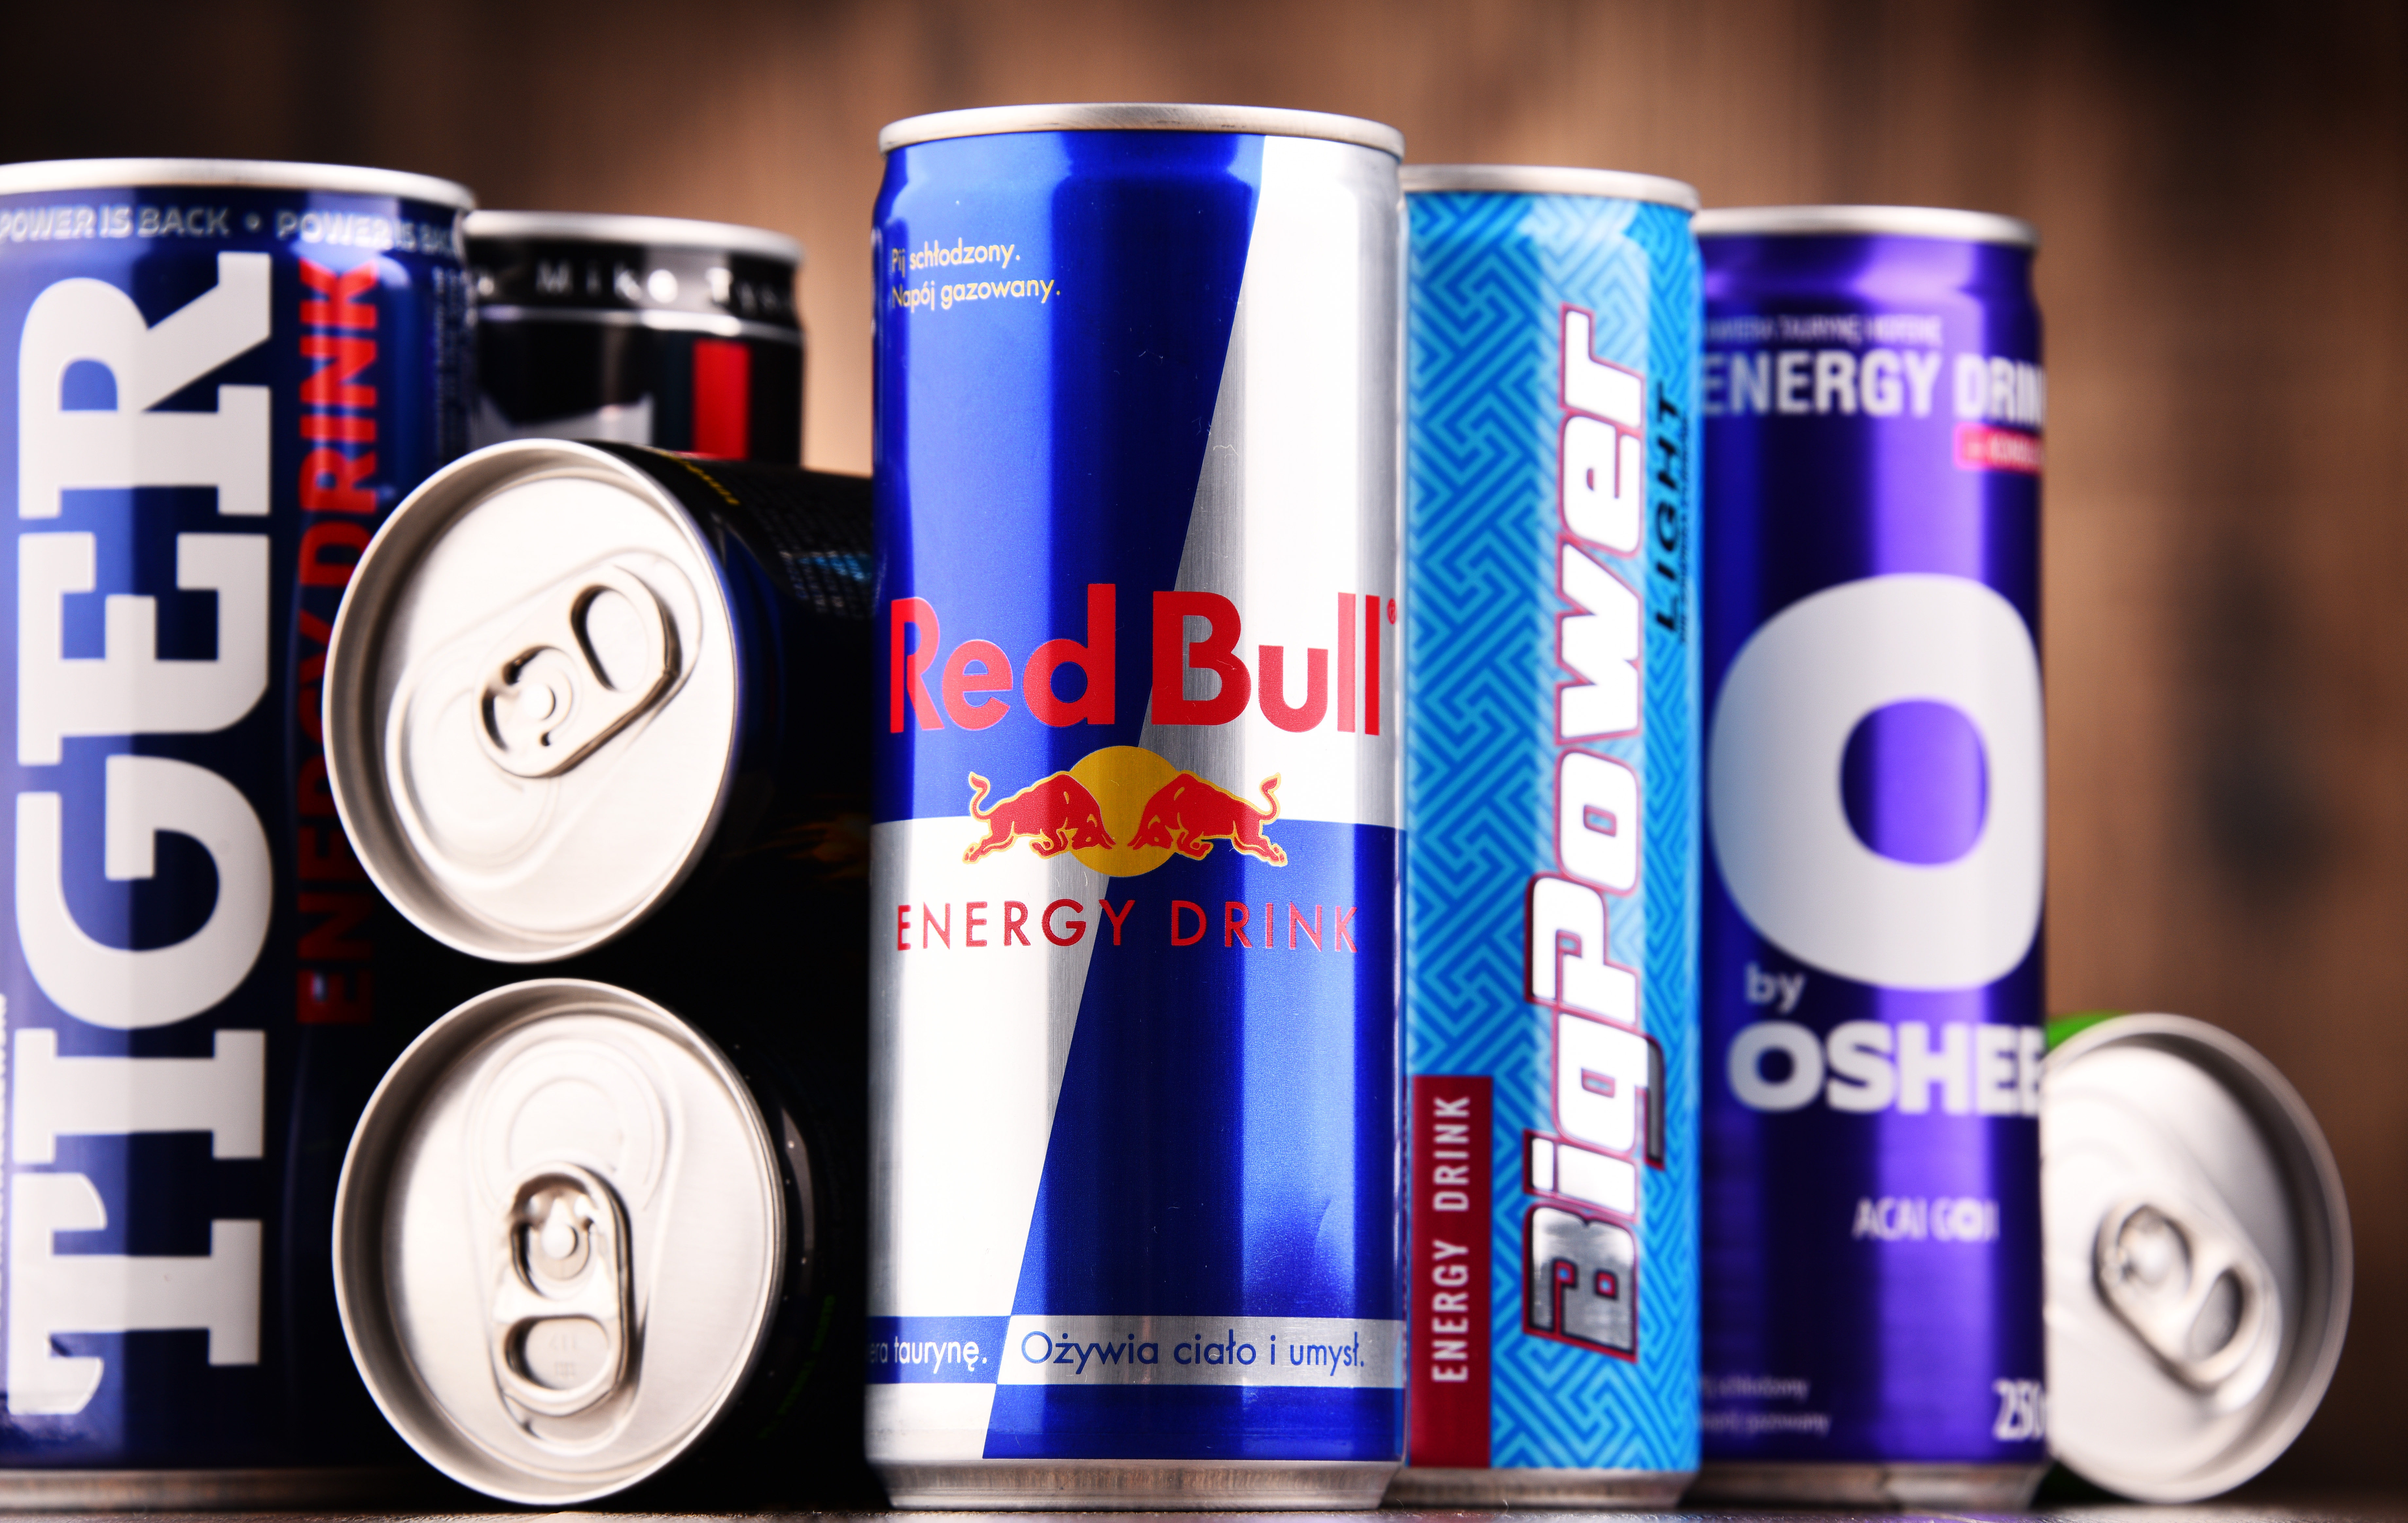 Too many energy drinks and other super-caffeinated products can be a health buzzkill.